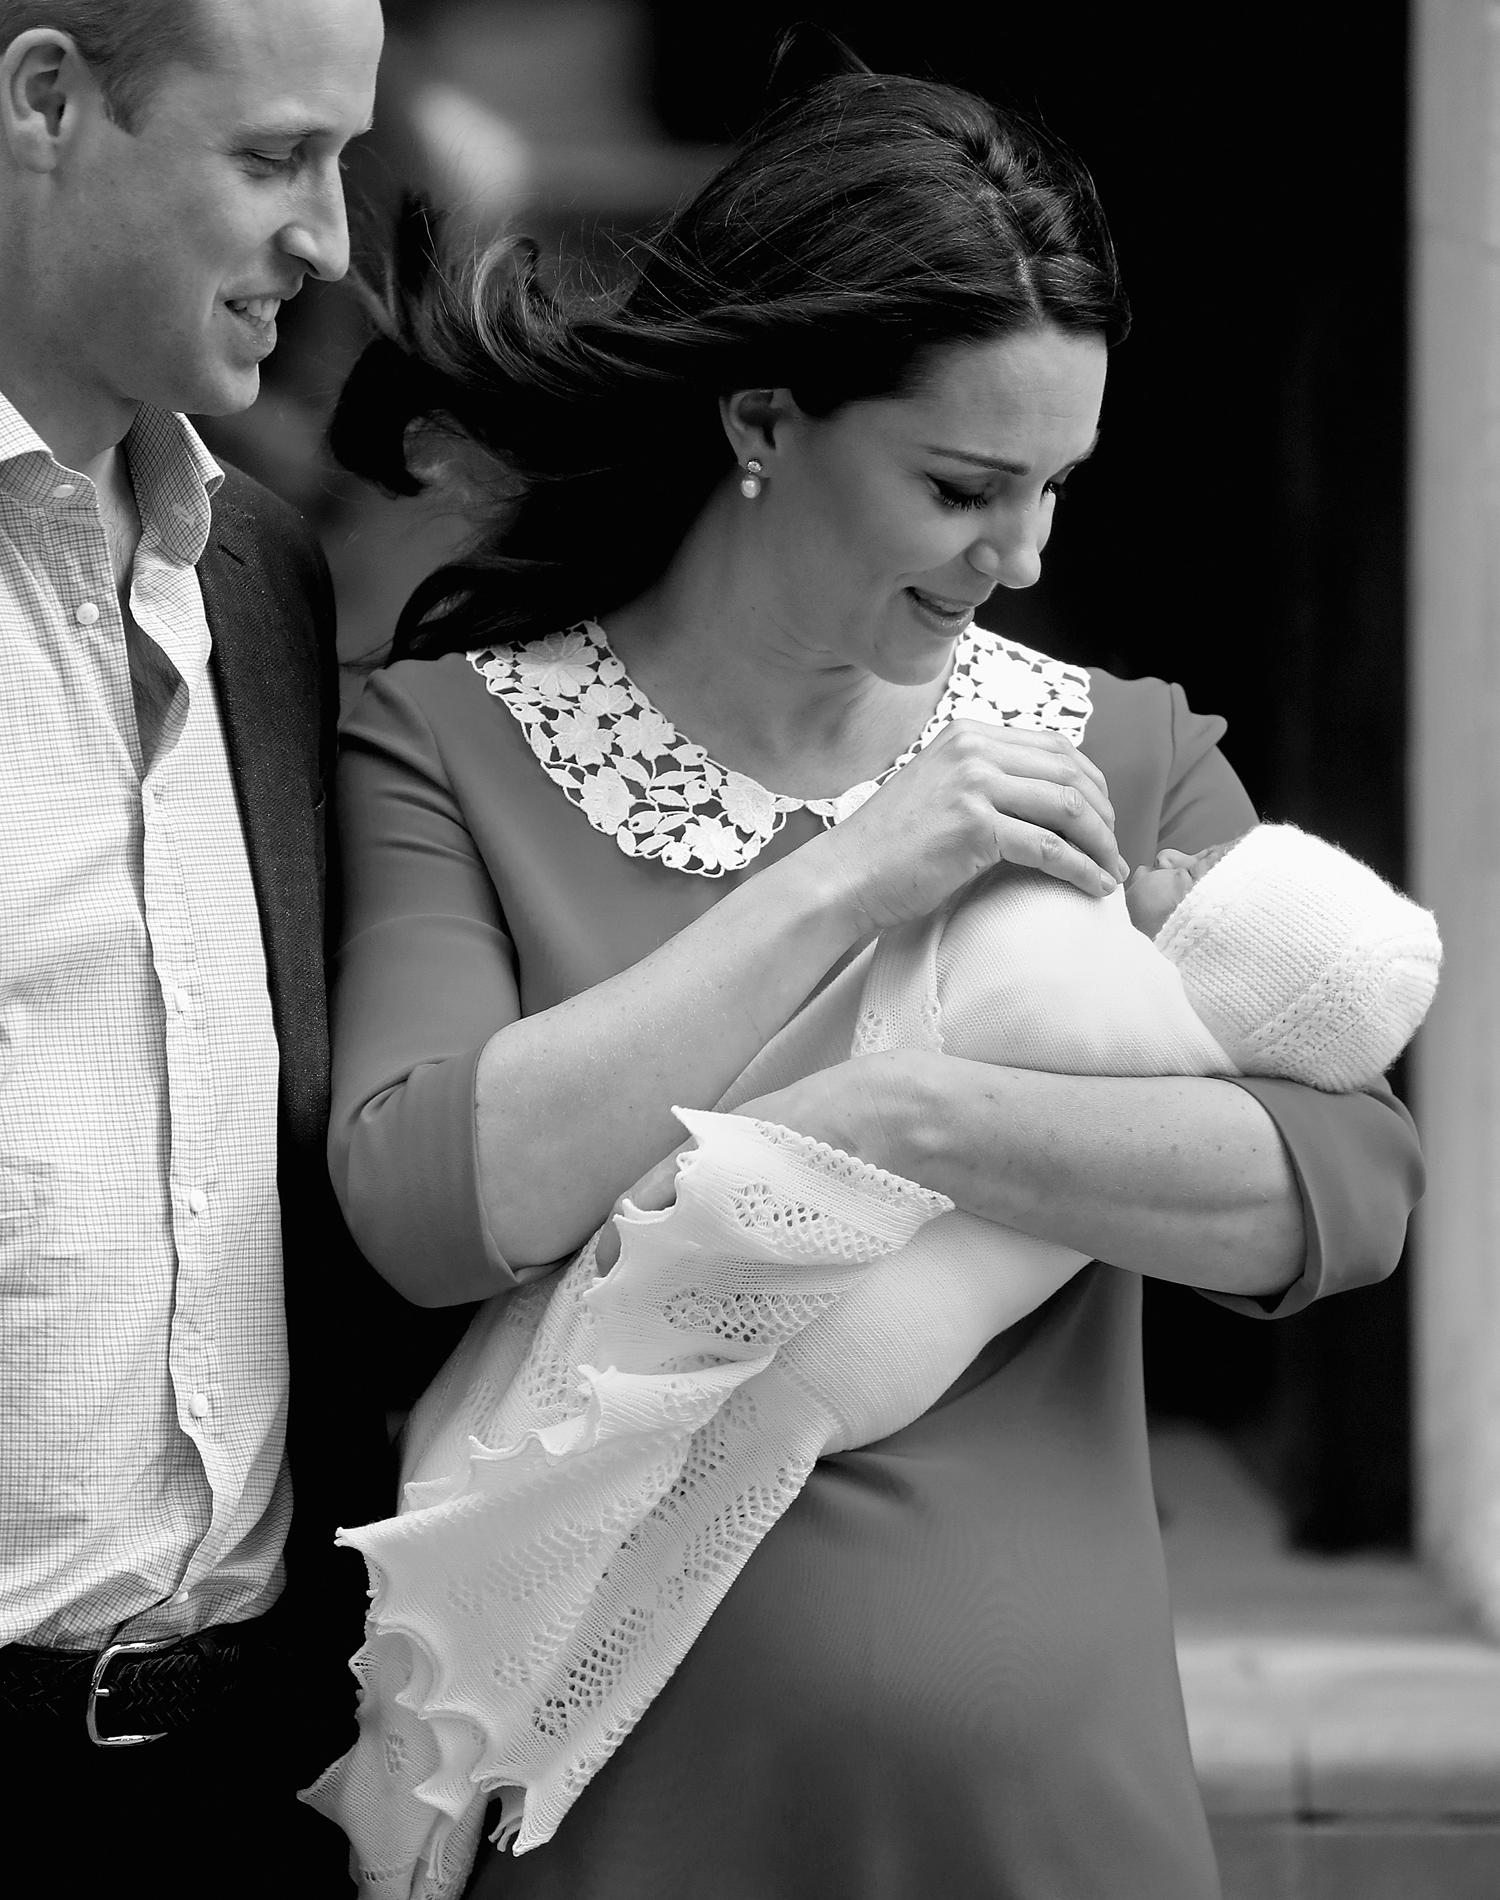 Bienvenue à Son Altesse Royale le prince Louis de Cambridge, un prénom inattendu